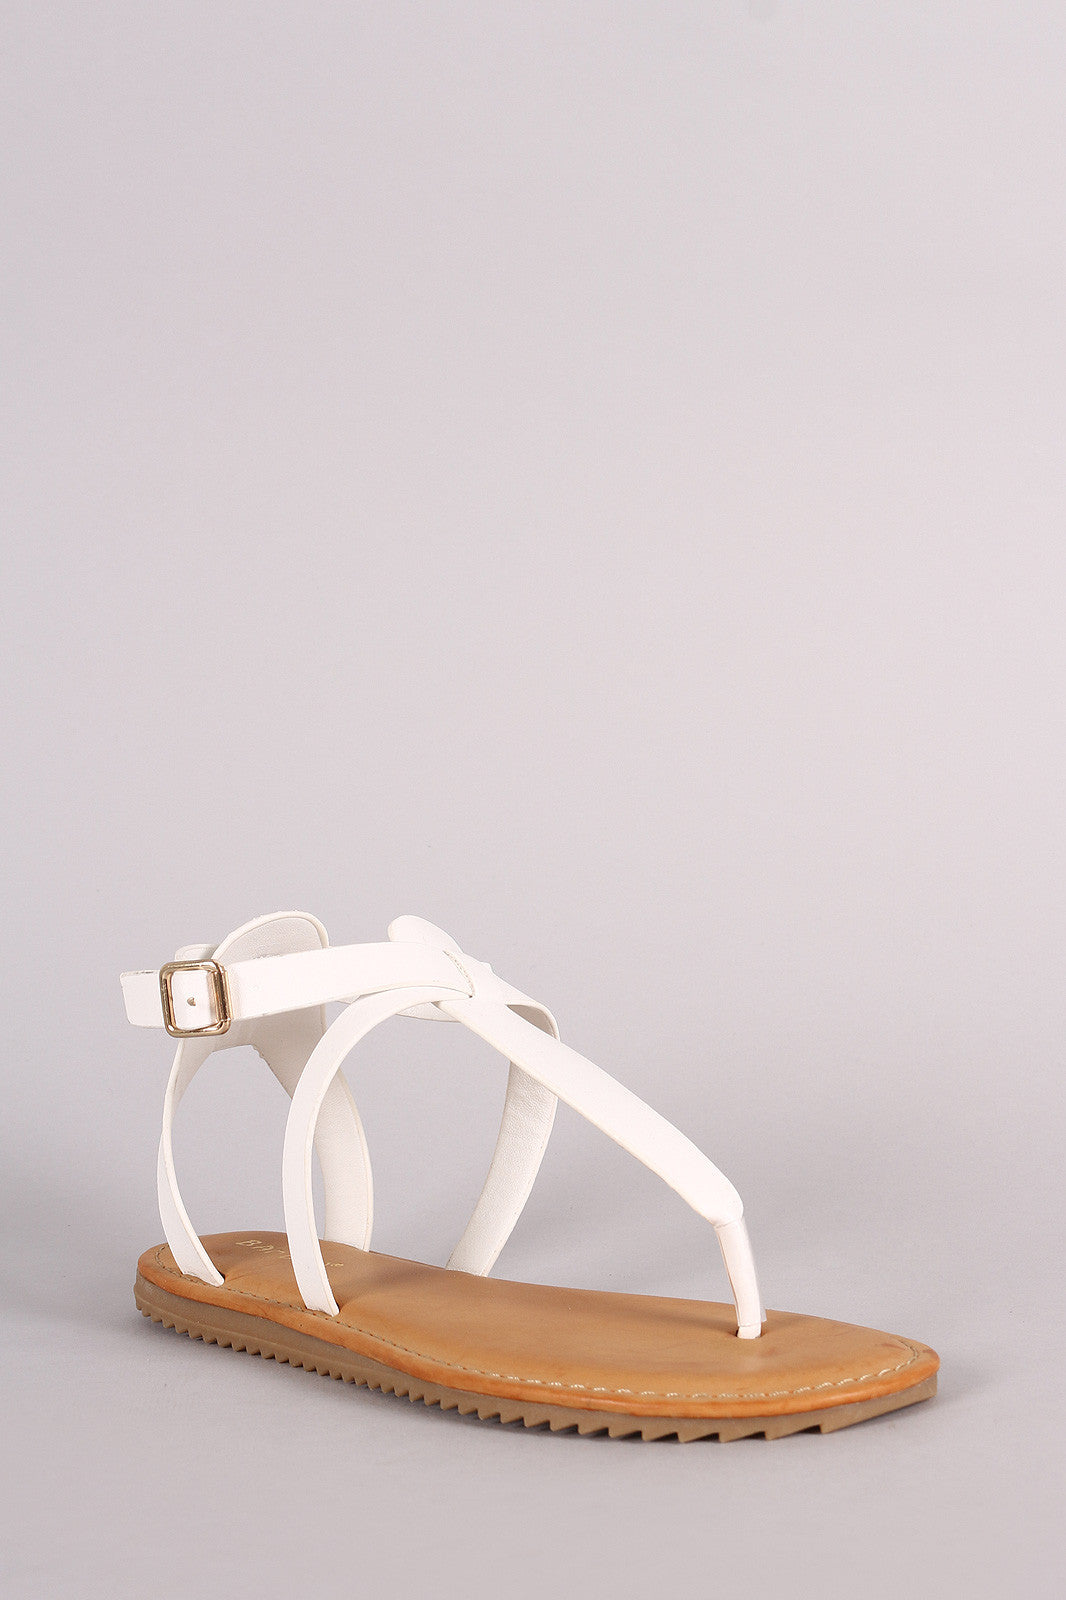 Bamboo Lug Sole Crisscross Ankle Strap Thong Flat Sandal - Thick 'N' Curvy Shop - 5